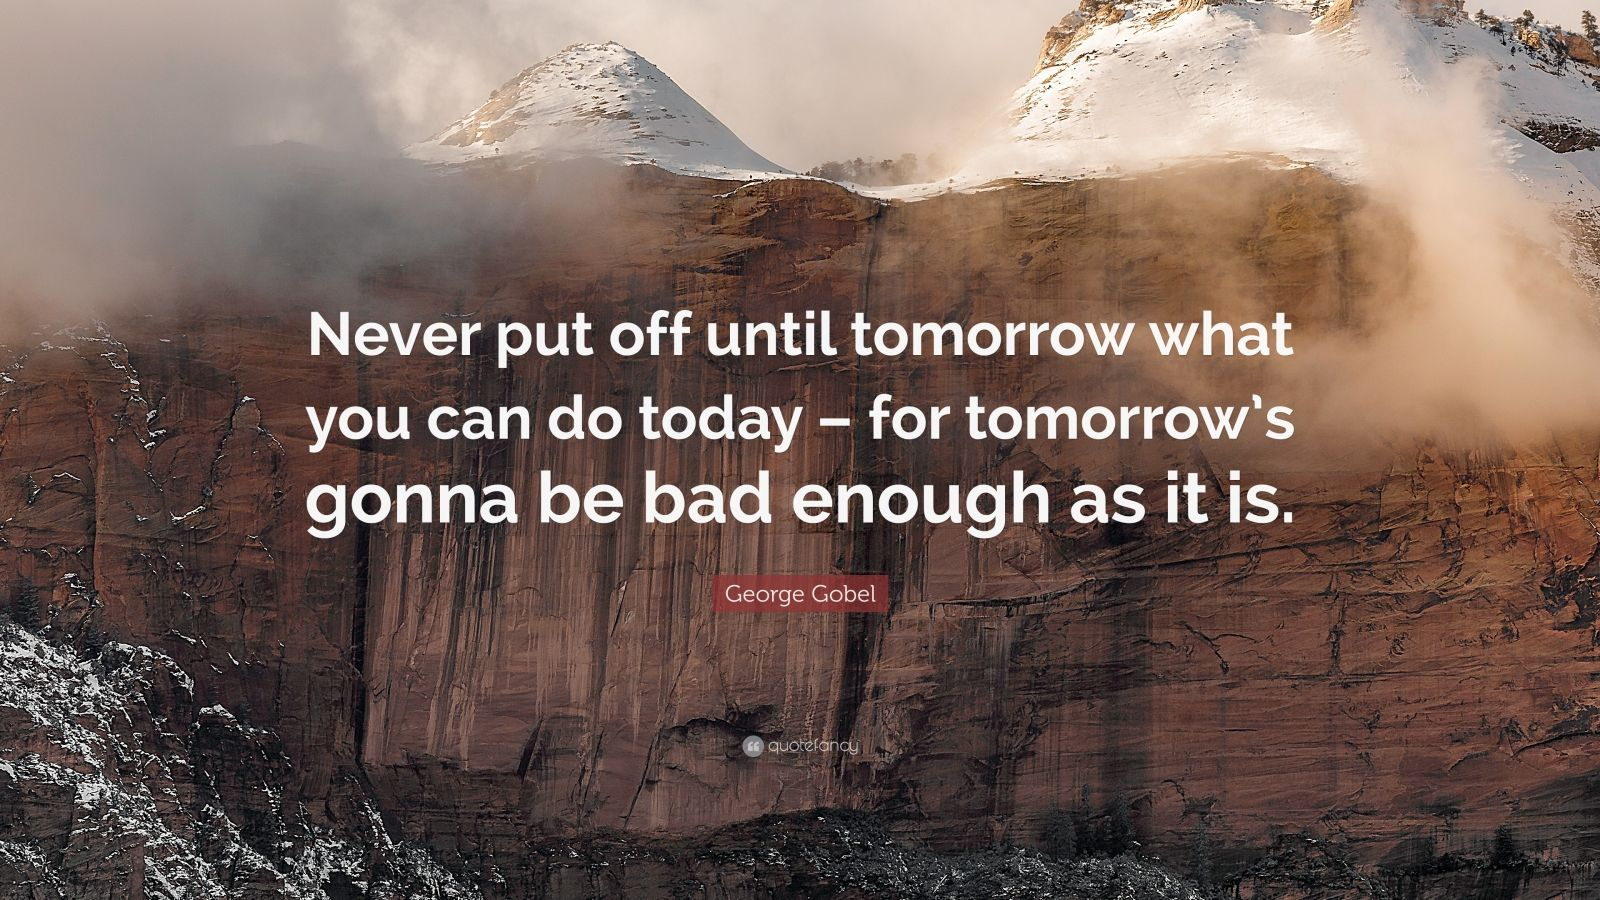 Never Put Off Till Tomorrow What You Can Do The Day After Tomorrow Just As Well